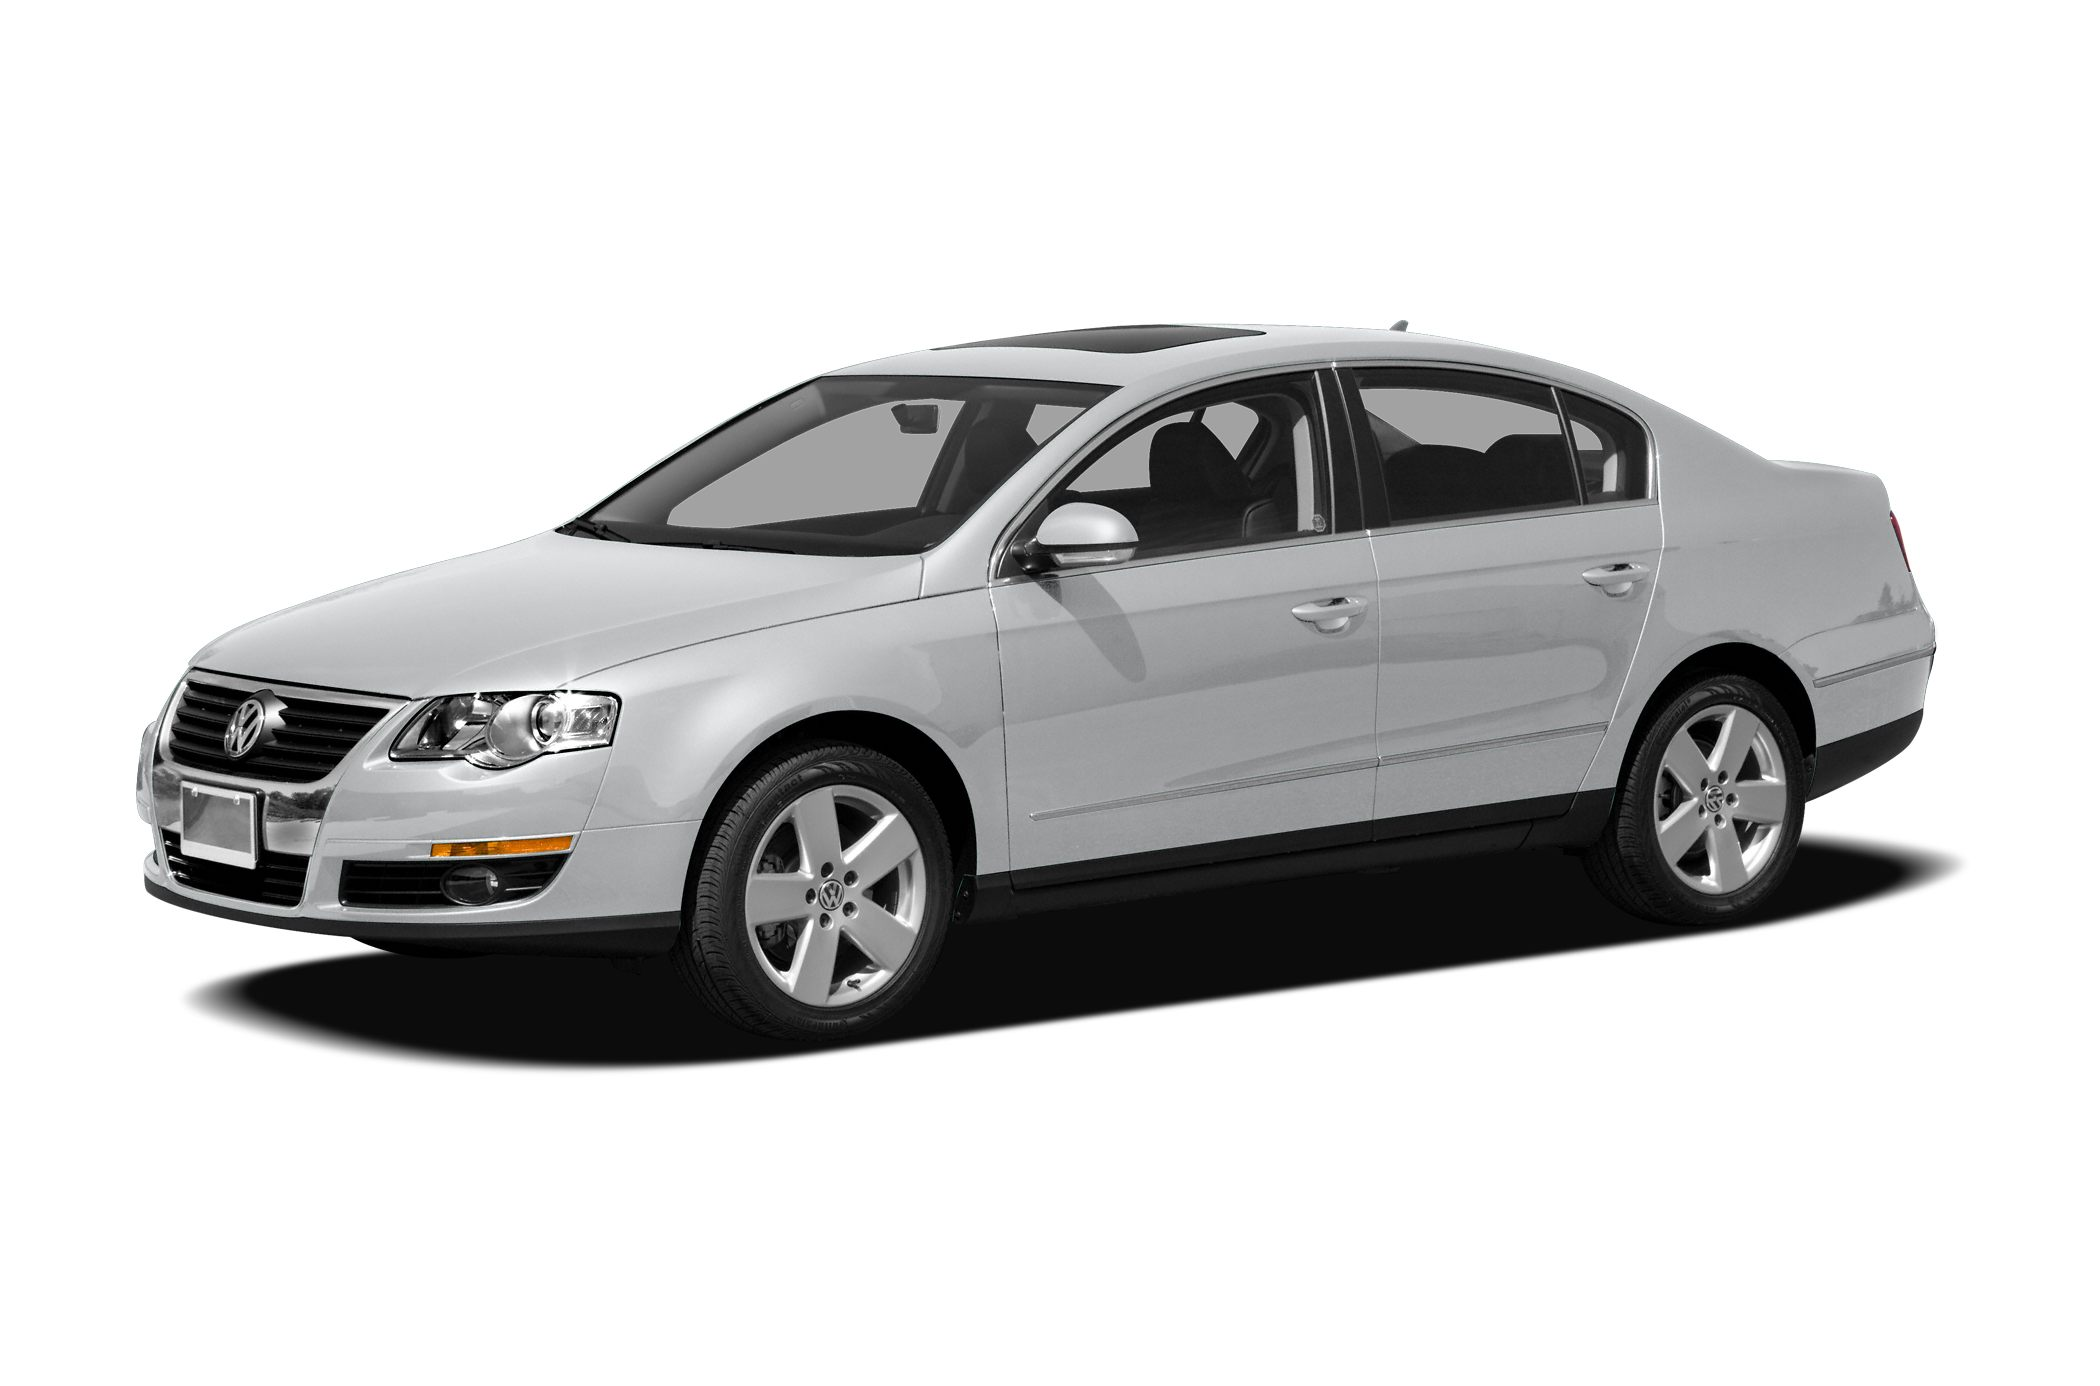 2008 Volkswagen Passat